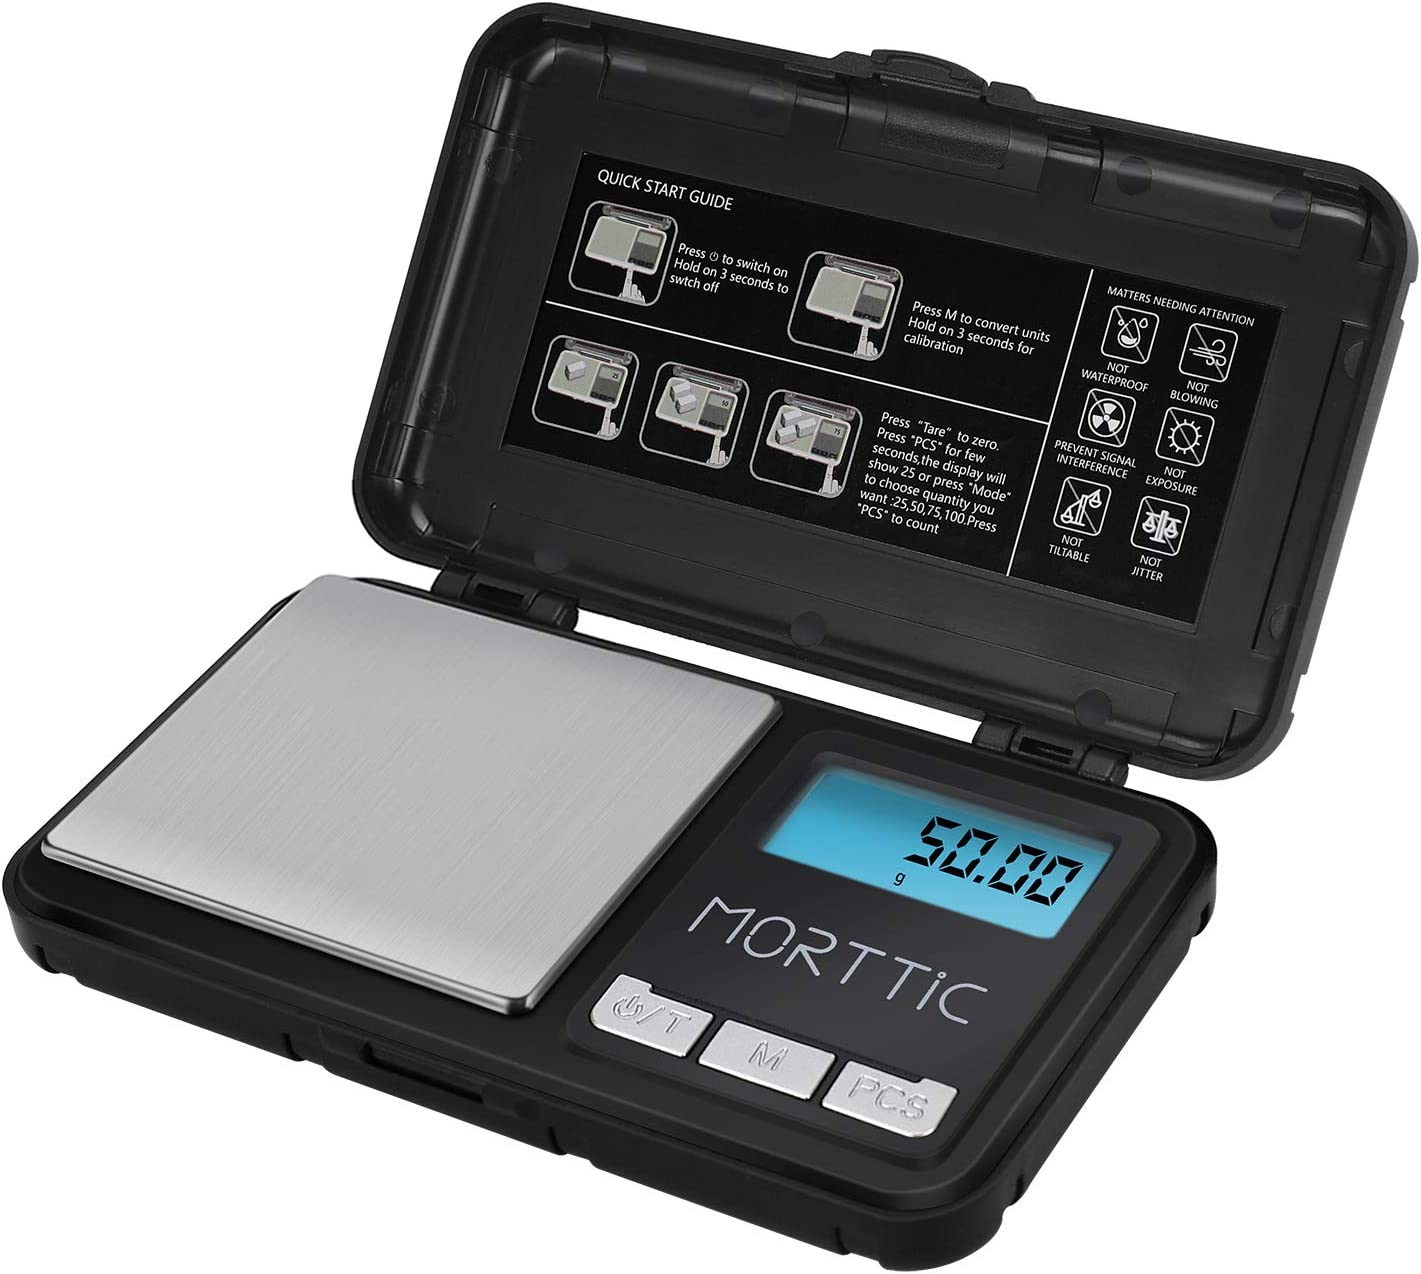 Morttic Weigh Gram Scale 200g/ 0.01g, Digital Pocket Scale, Food Scale, Mini Jewelry Scale, Kitchen Scale, 9 Units Conversion, Tare & LCD Backlit Display, Auto Off Function